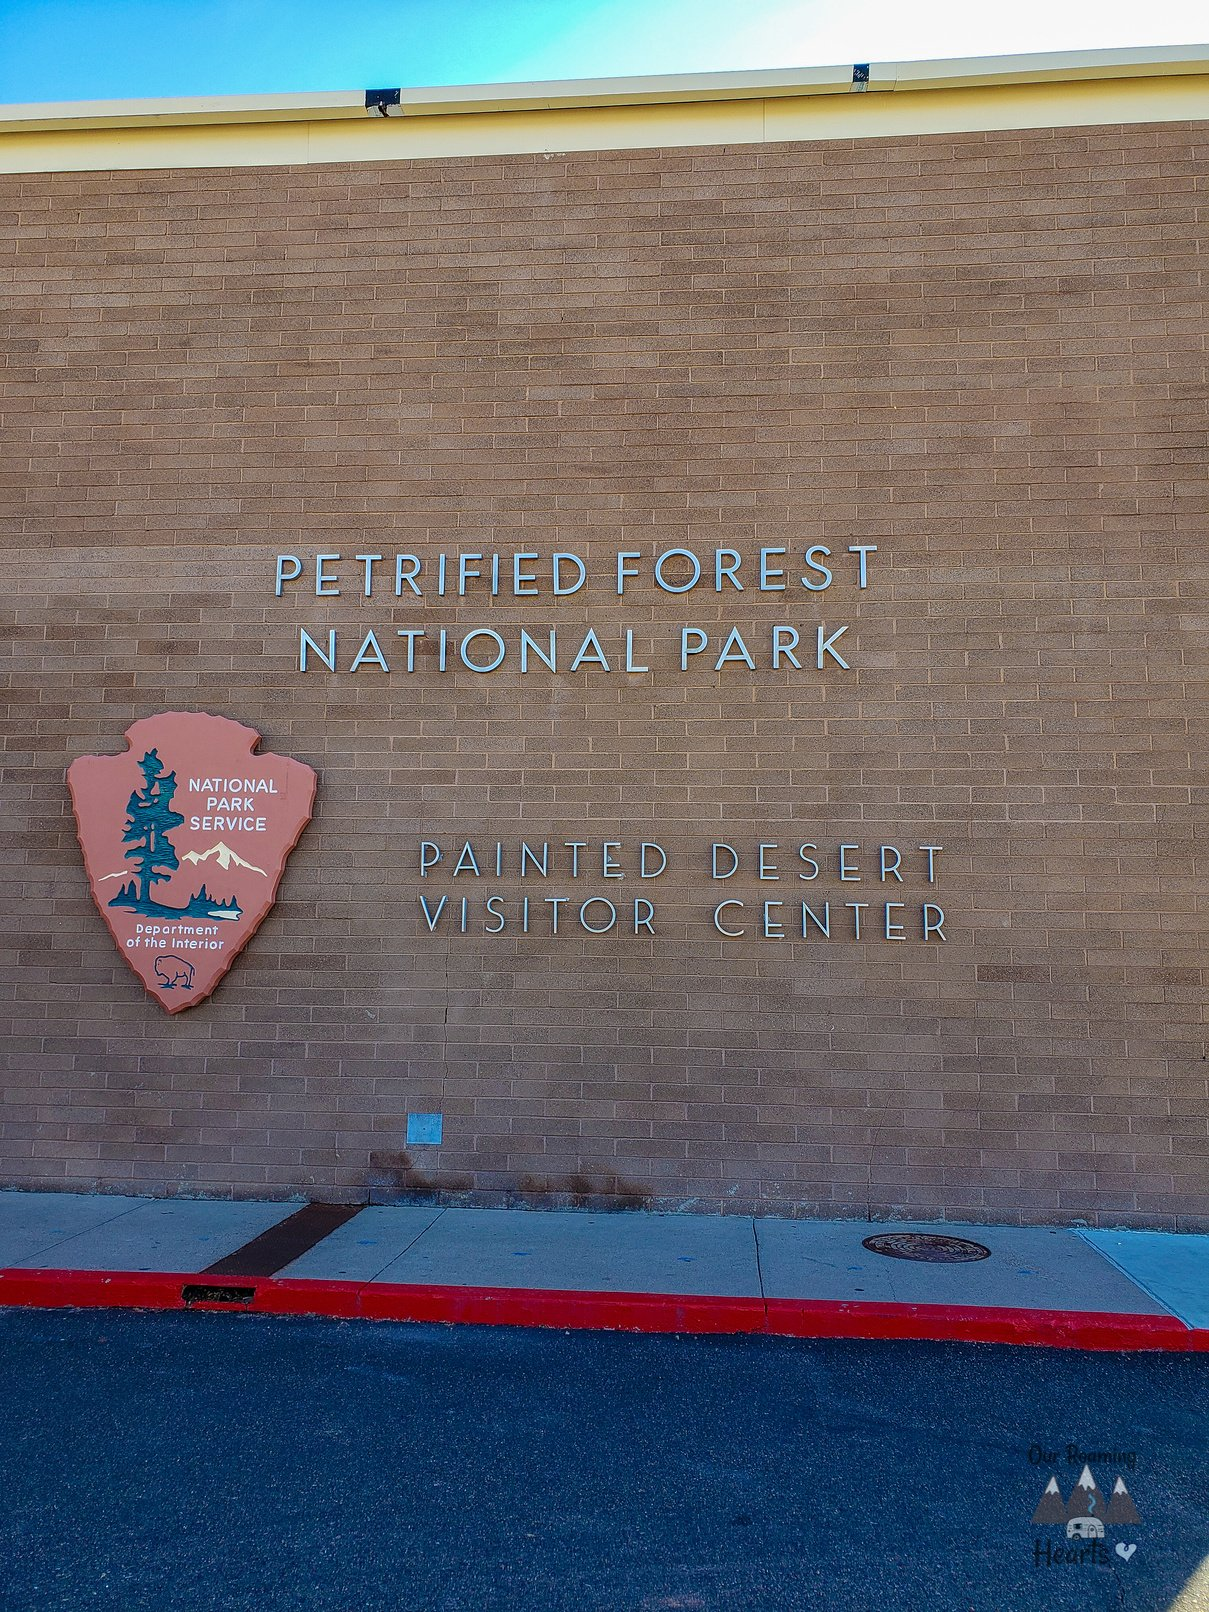 Painted Desert Visitor Center